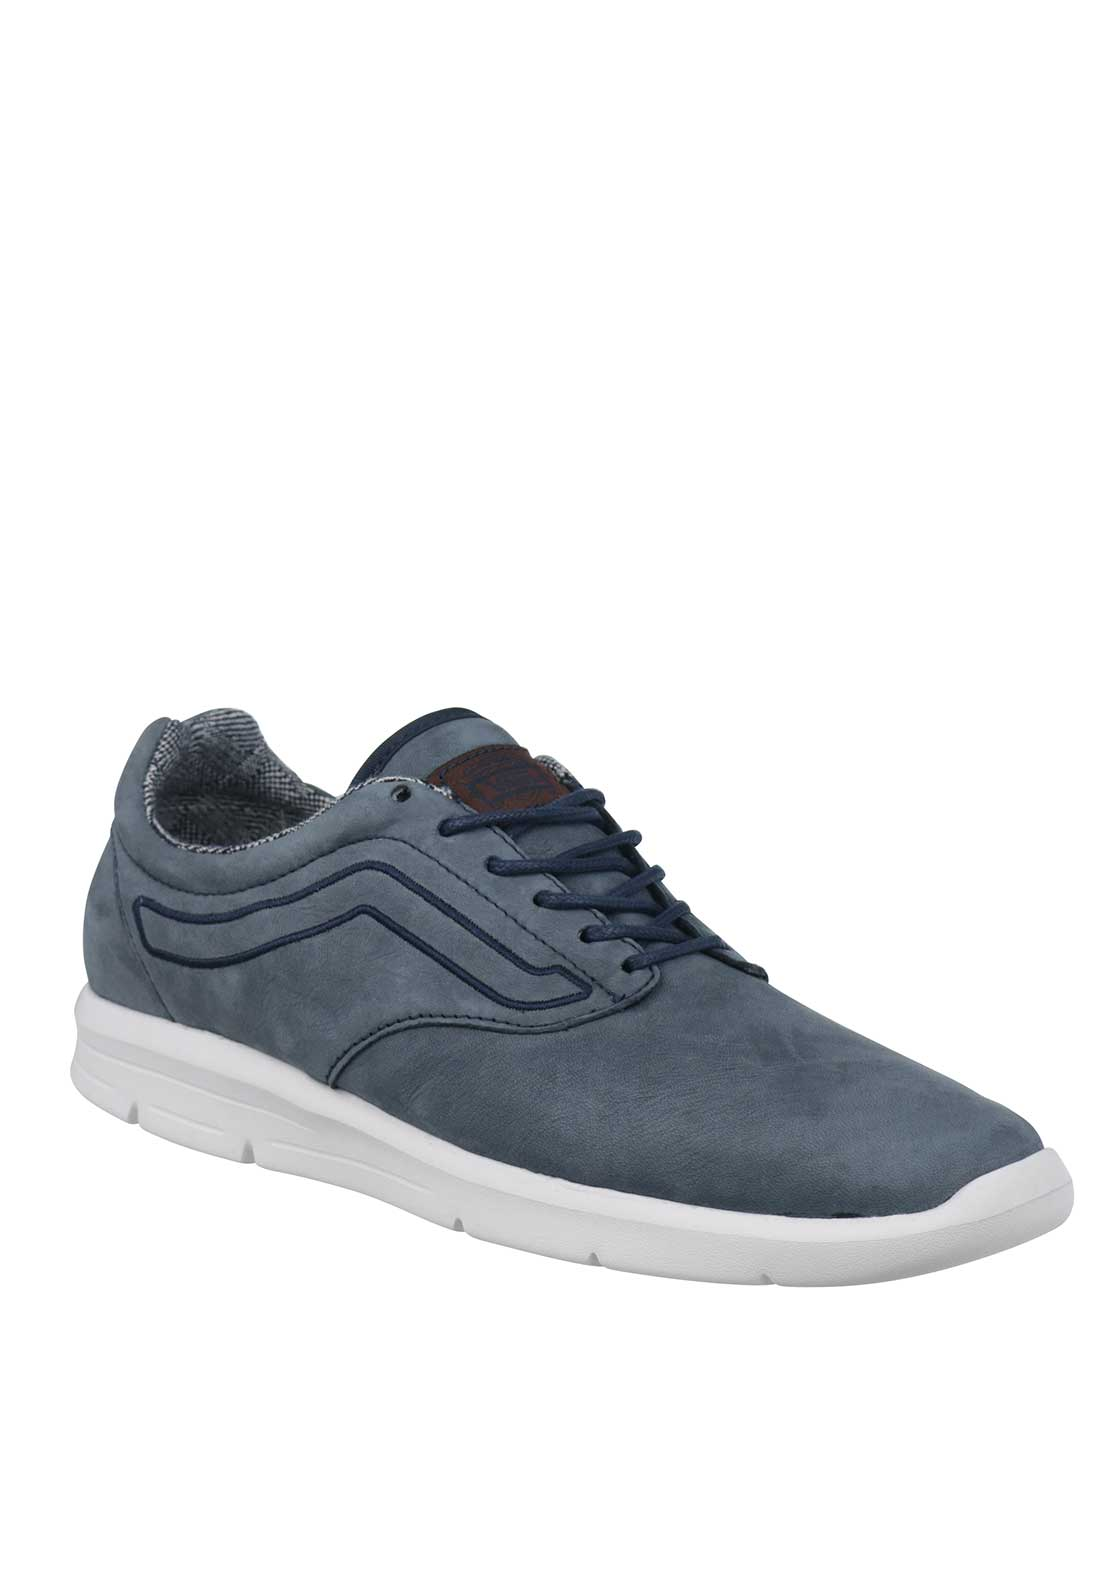 Vans Mens Leather Suiting Iso Trainers, Blue